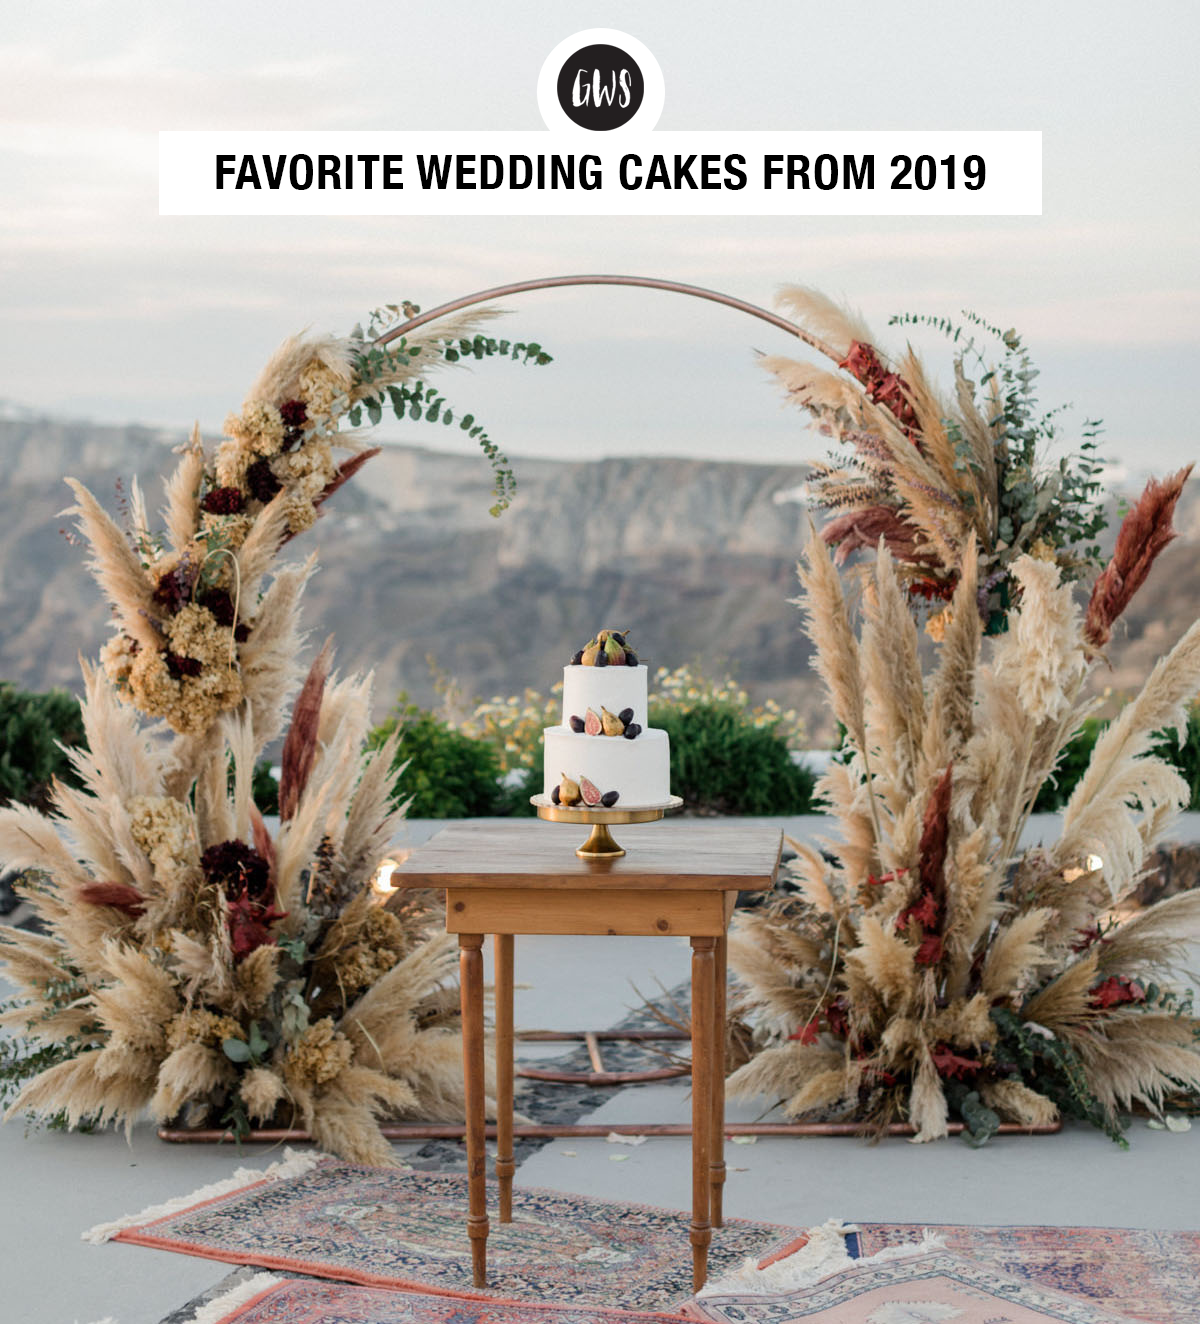 Our Favorite Wedding Cakes from 2019